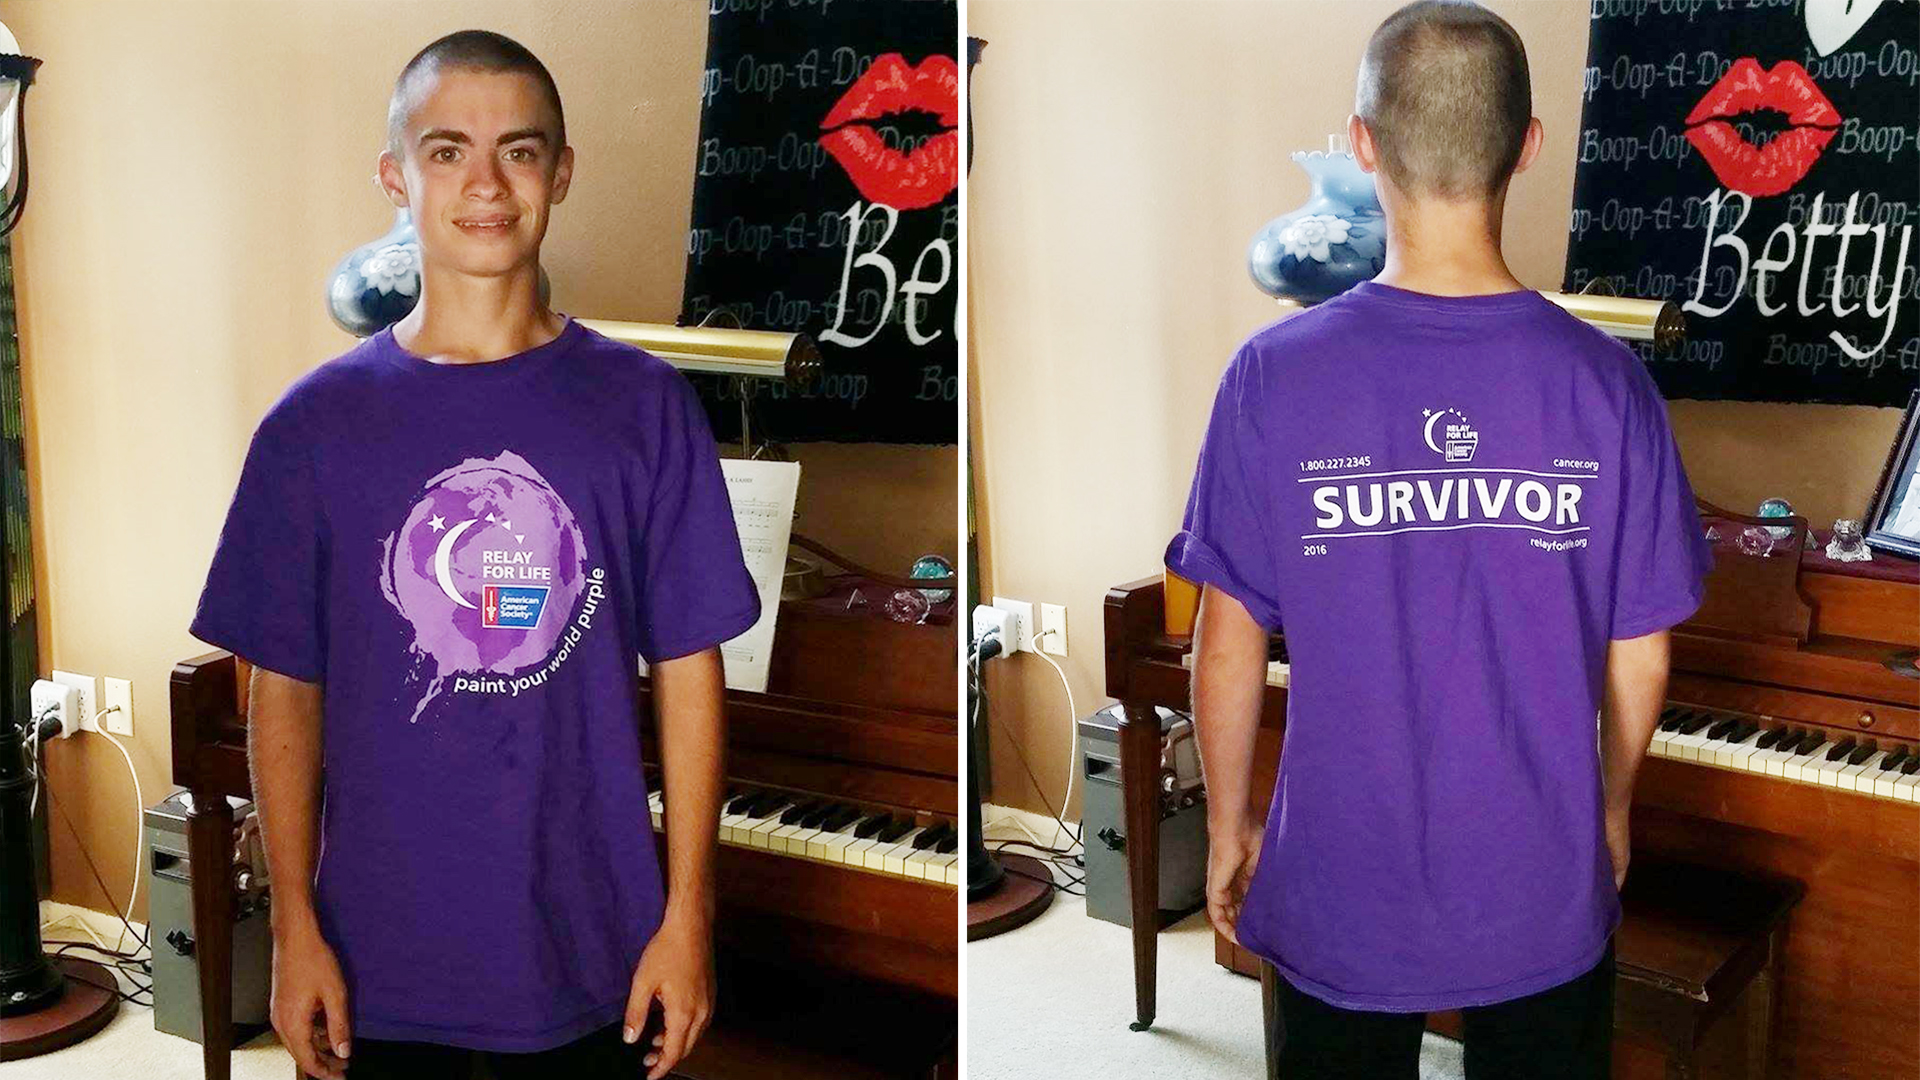 d49eb74c30d80 Teen s Relay for Life  survivor  T-shirt is cause for dress code violation